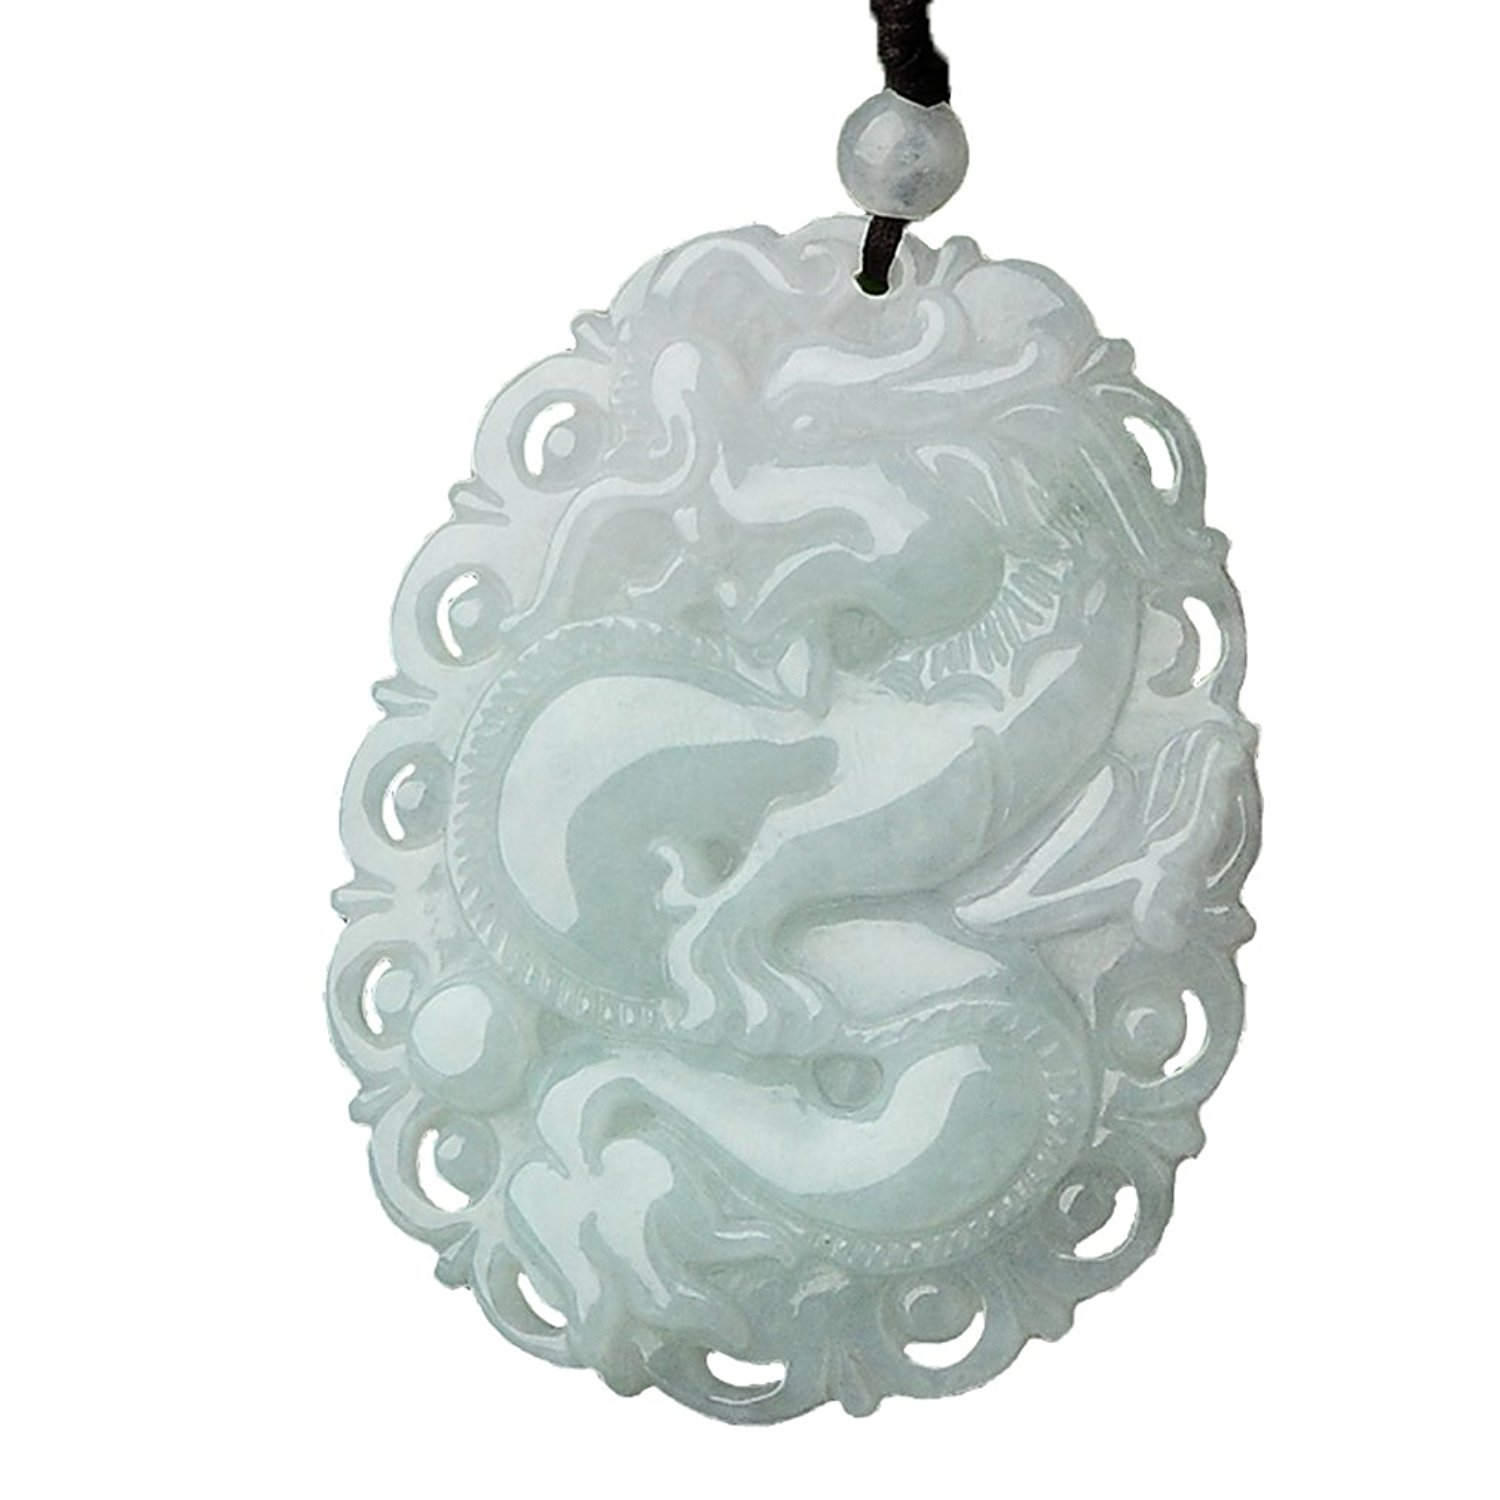 Koraba Fine Jewelry Pure Natural Hand Carved Jadeite Jade Dragon Amulet Pendant Necklace Free Shipping wonderful handwork natural grade a green jadeite carved turtle crane lucky amulet pendant free necklace certificate jewelry